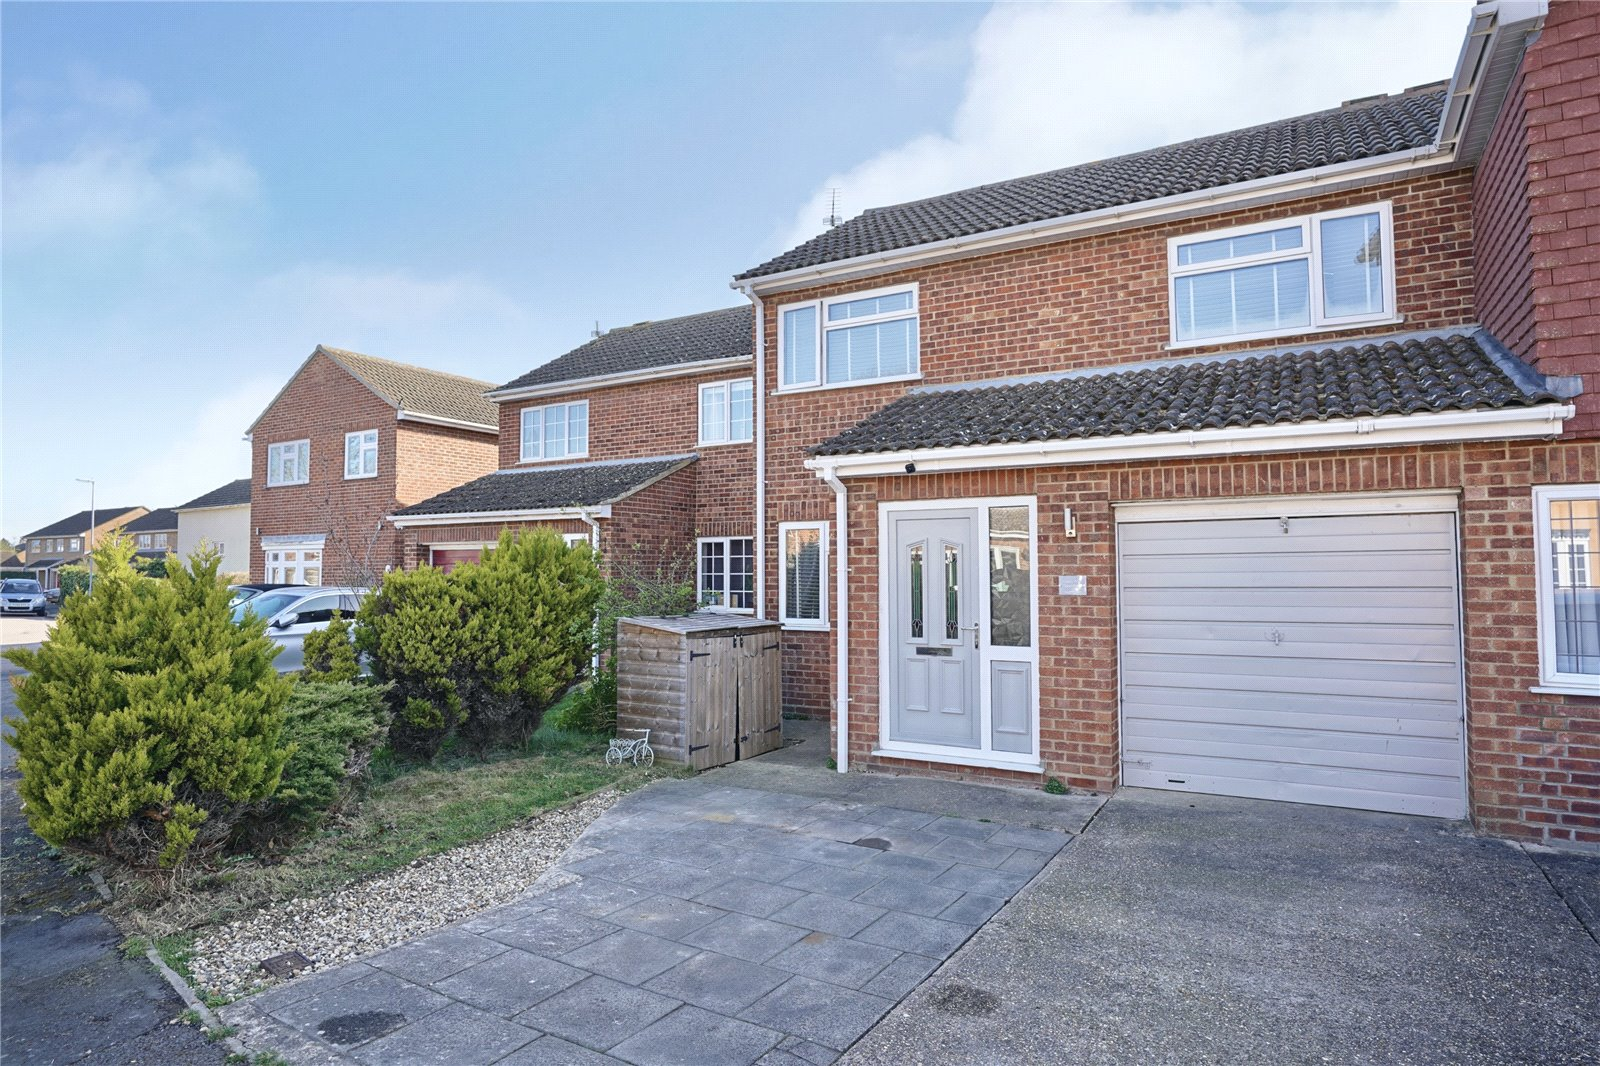 3 bed house for sale in Earith, PE28 3QY 0